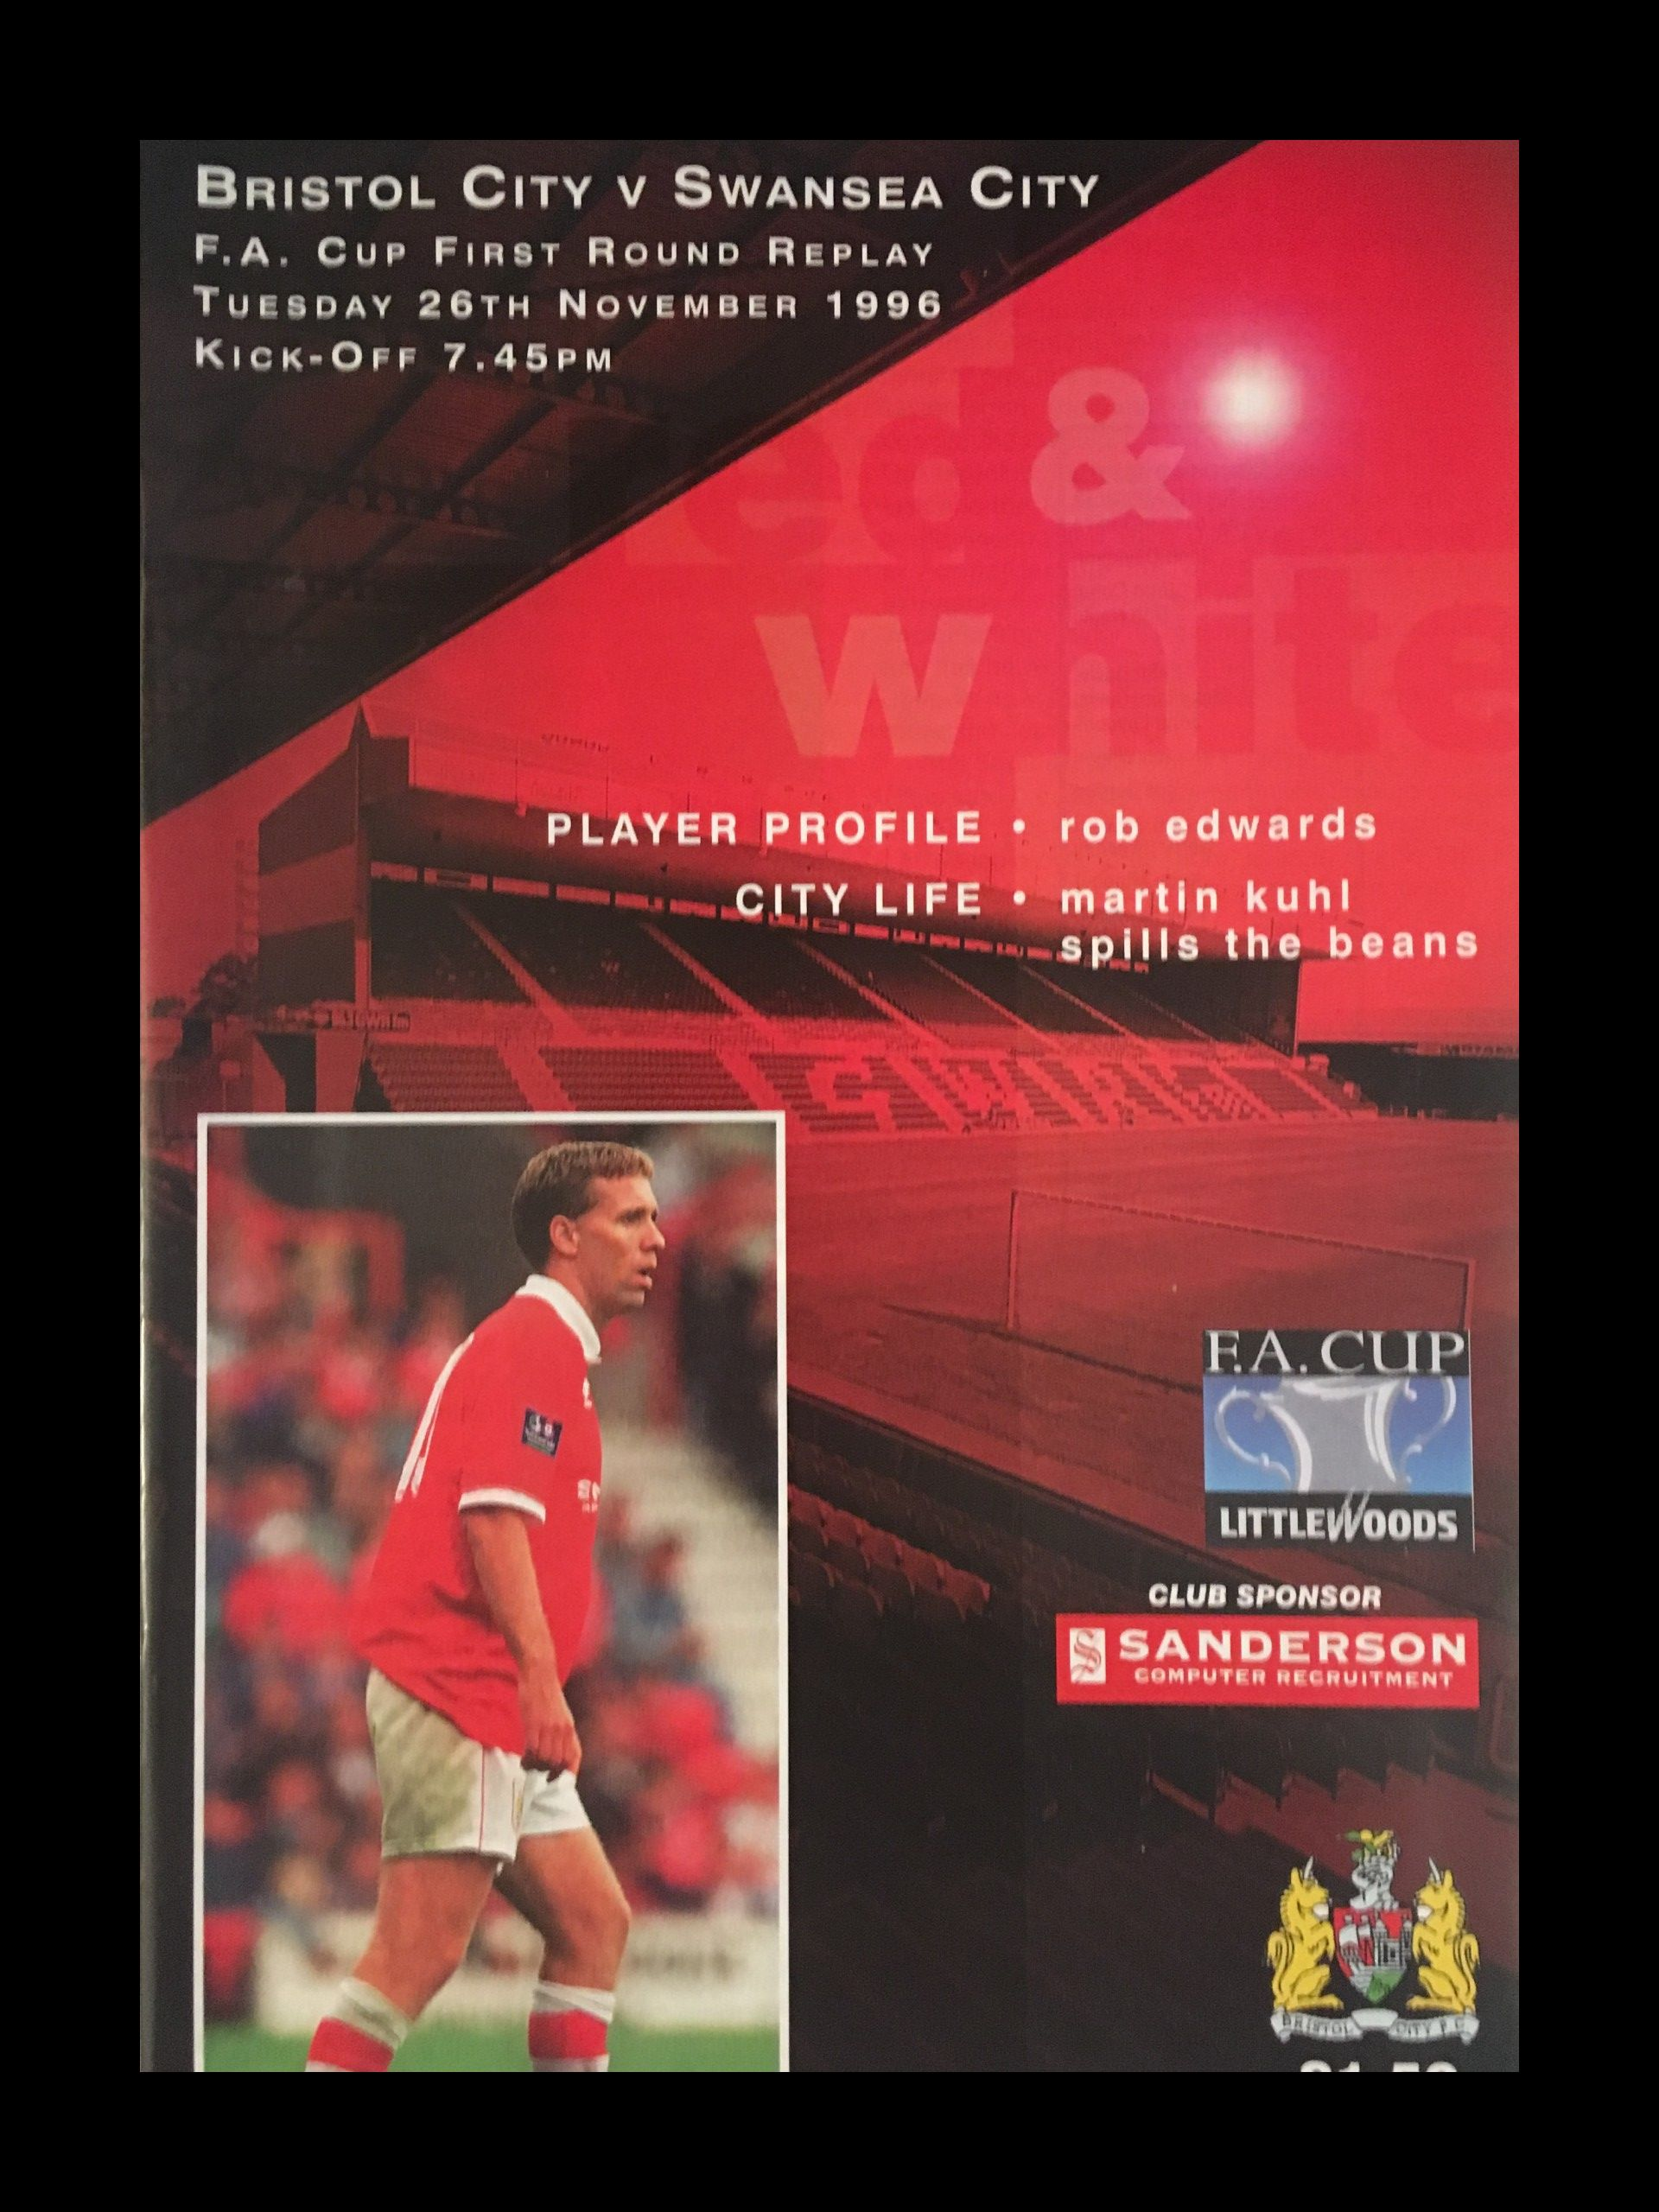 Bristol City v Swansea City 26-11-1996 Programme